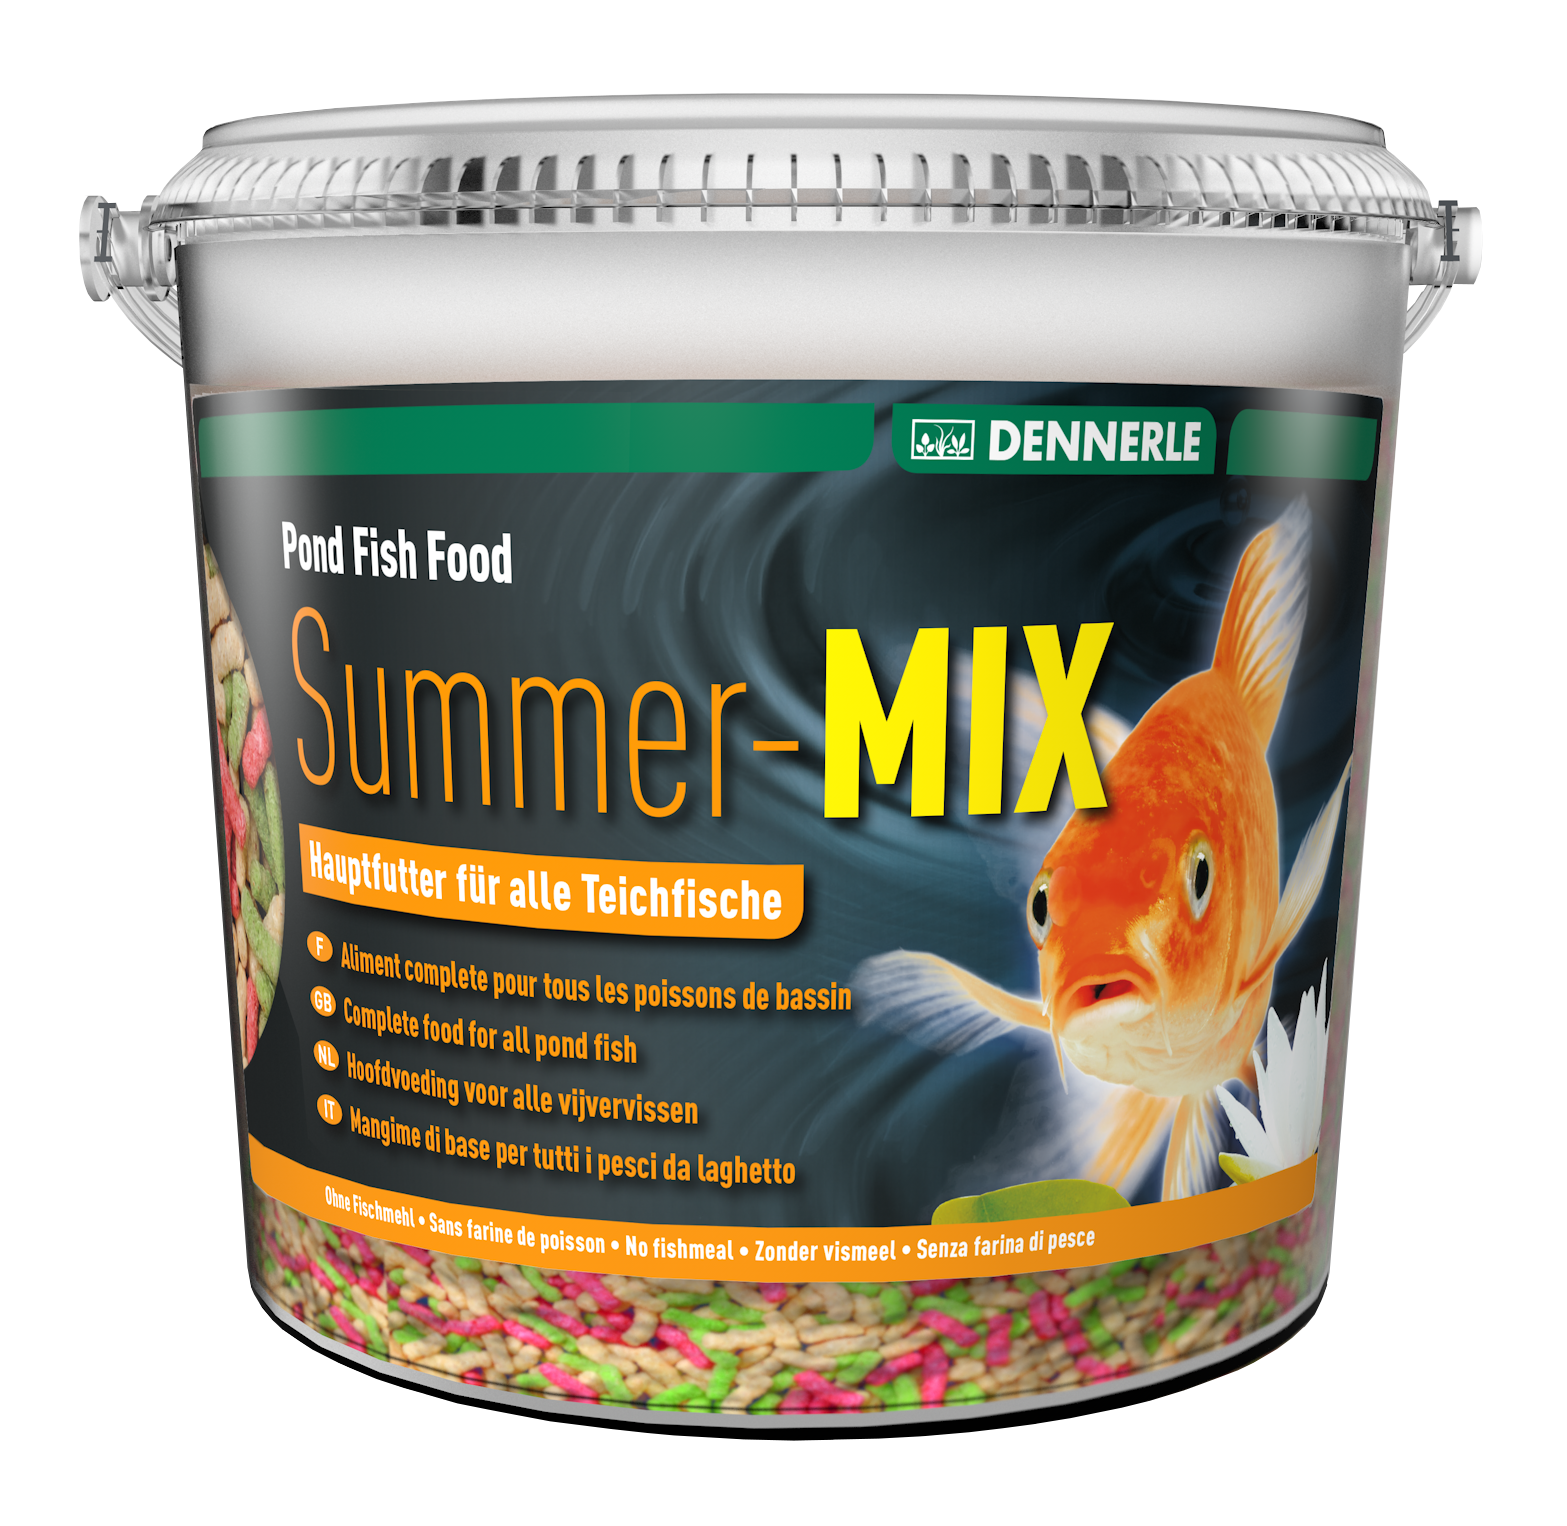 Pond fish food summer mix dennerle for Pond fish food